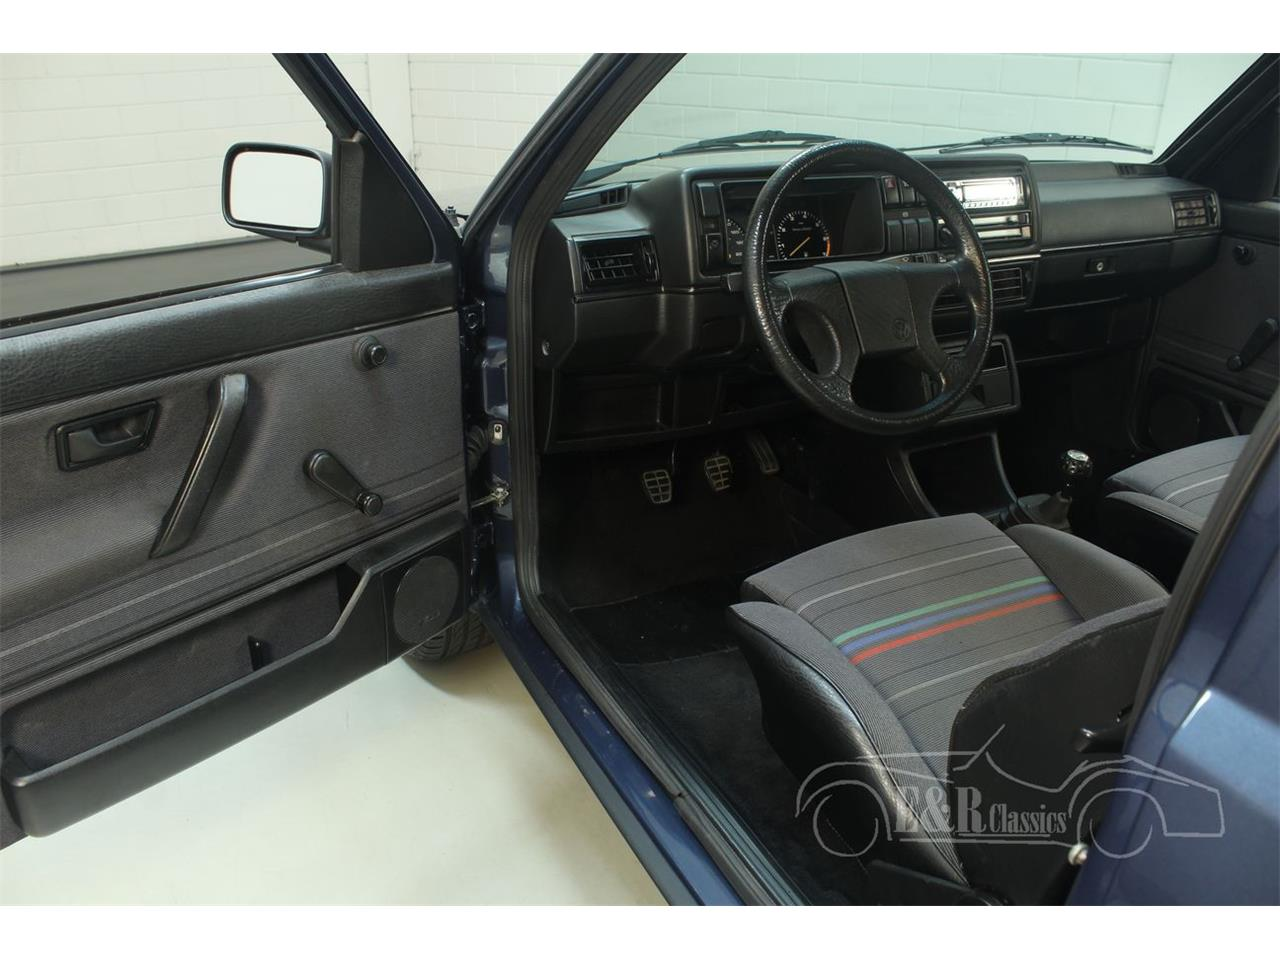 Large Picture of '88 Volkswagen Golf located in Noord-Brabant - $21,450.00 - PGLO